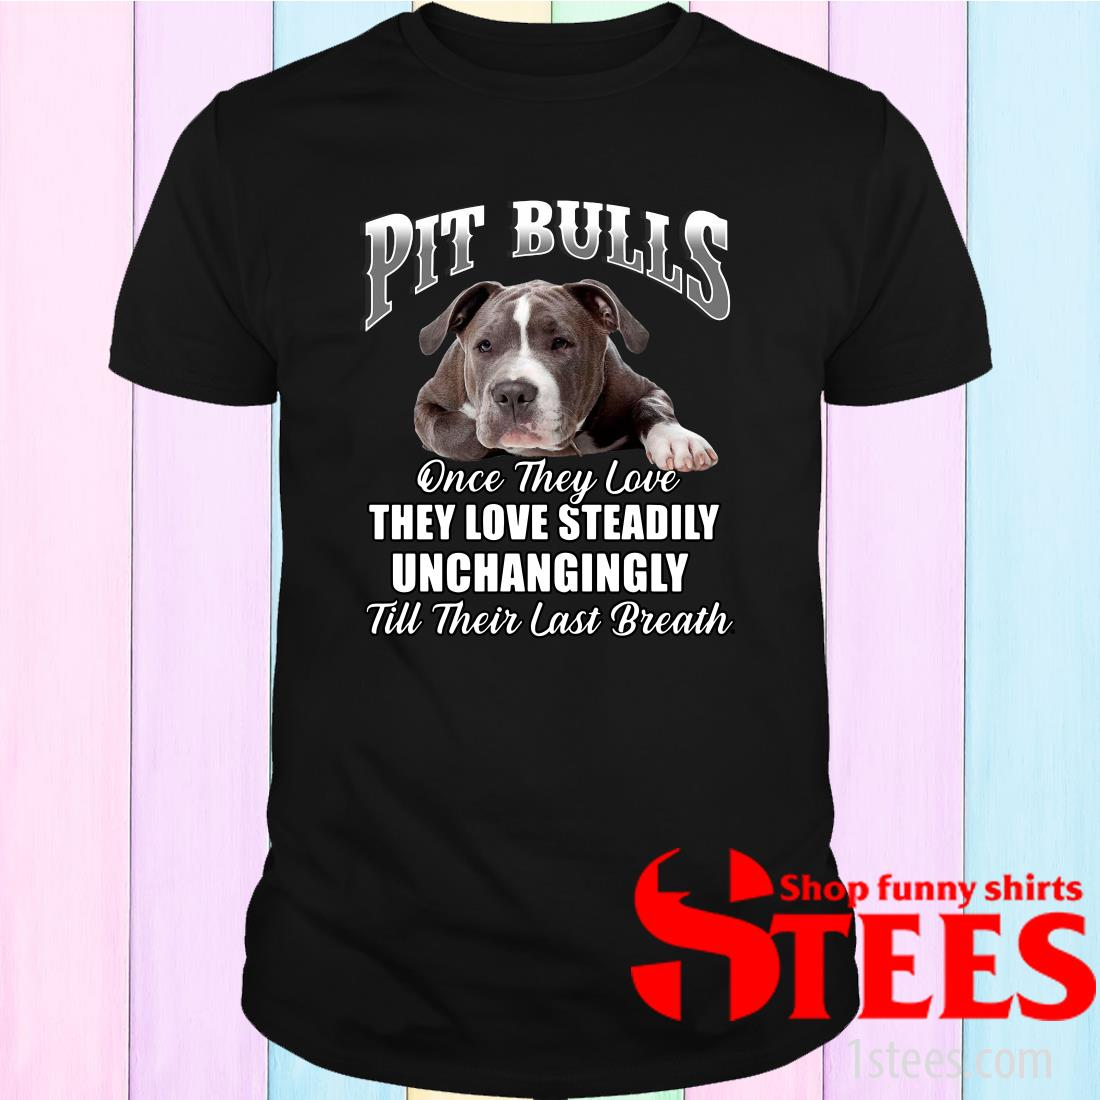 Pit Bulls Culis Once They Love They Love Steadily Unchangingly Till Their Last Breath T-Shirt